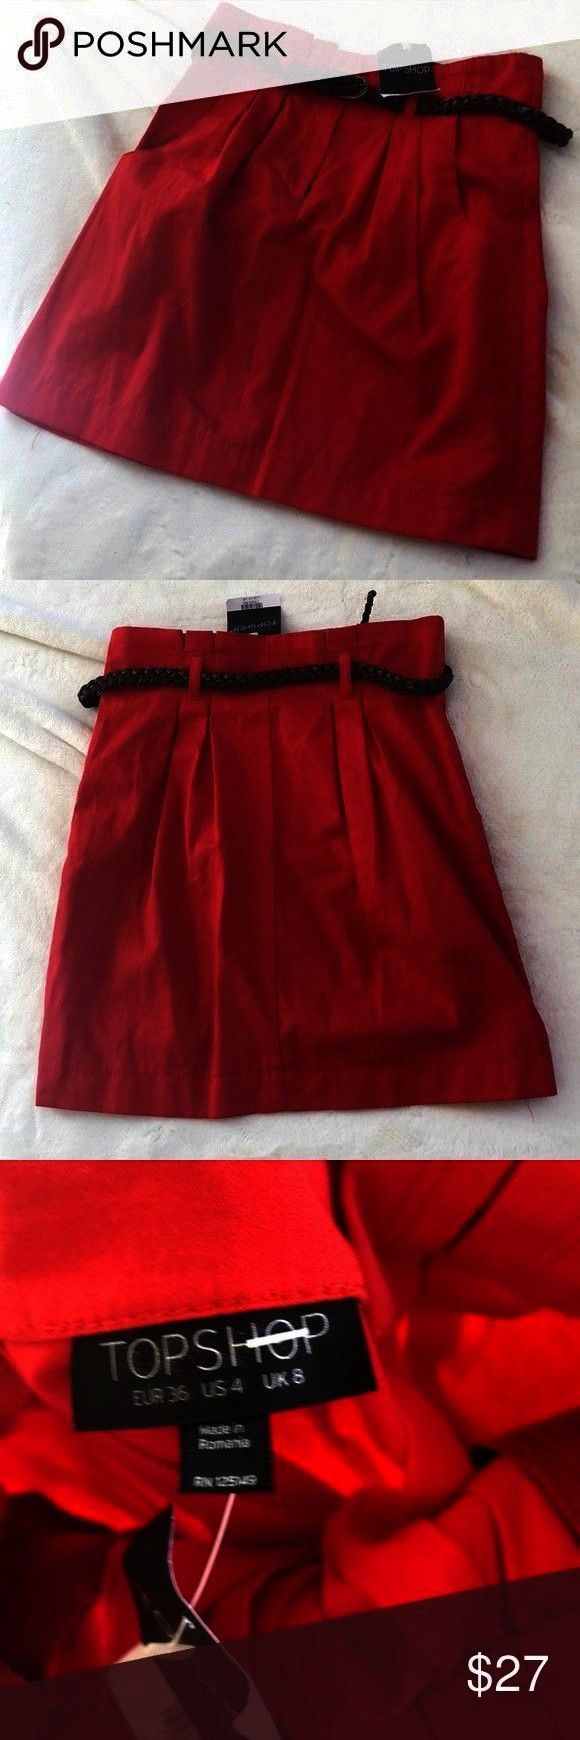 NWT Topshop red belted skirt Size 4 Belt has minor tear du NWT Topshop Skirt NWT Topshop red belted skirt Size 4 Belt has minor tear due to belt loop but is unnoticeable...